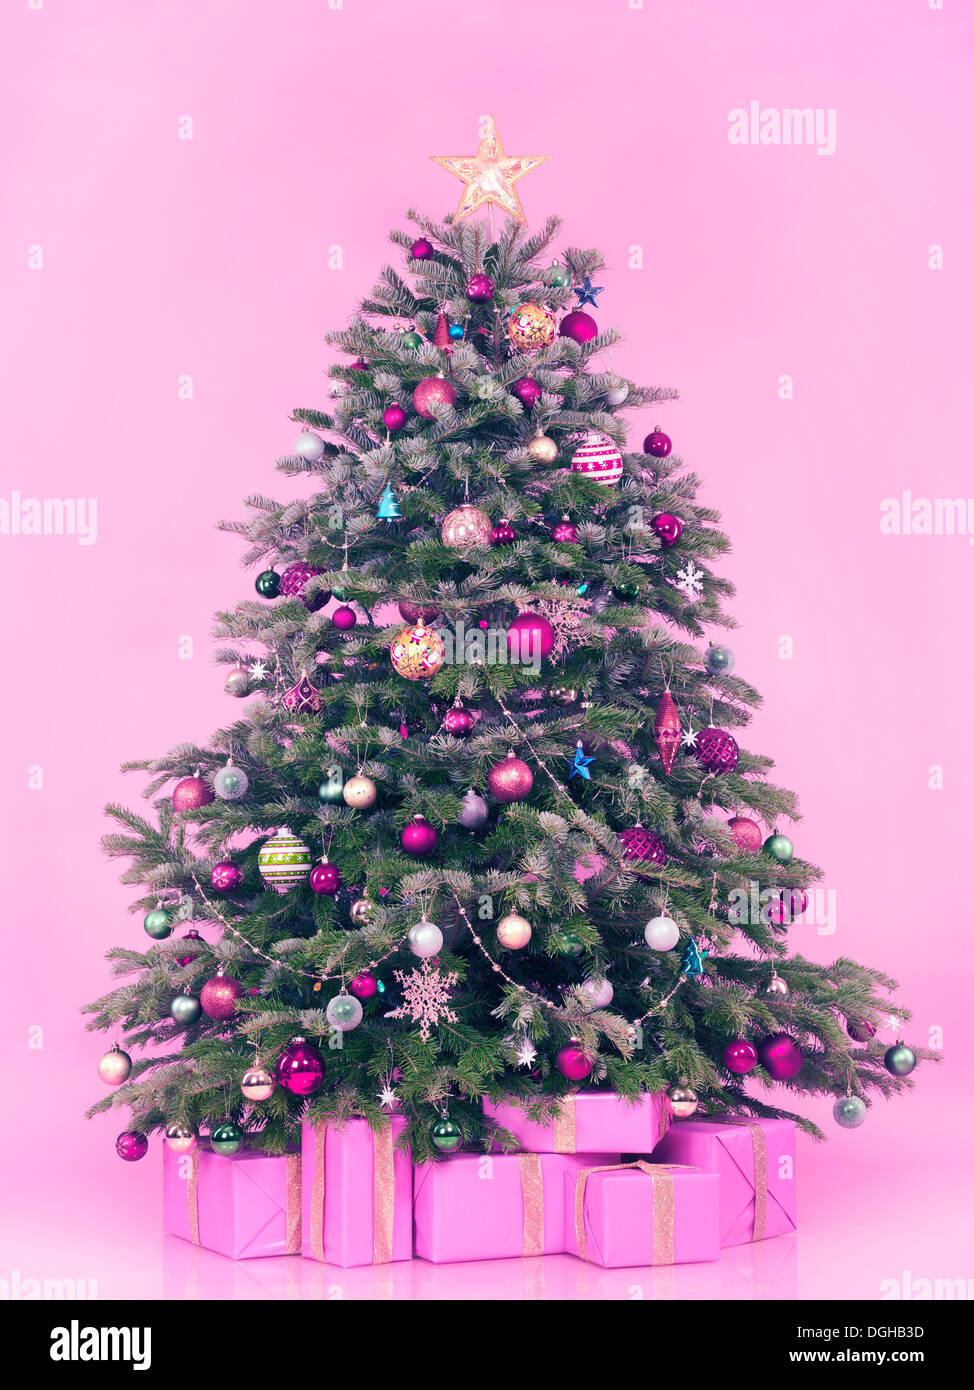 Decorated Christmas Tree With Presents And Gift Boxes Isolated On Pink Background In Pastel Colors Vintage Feel